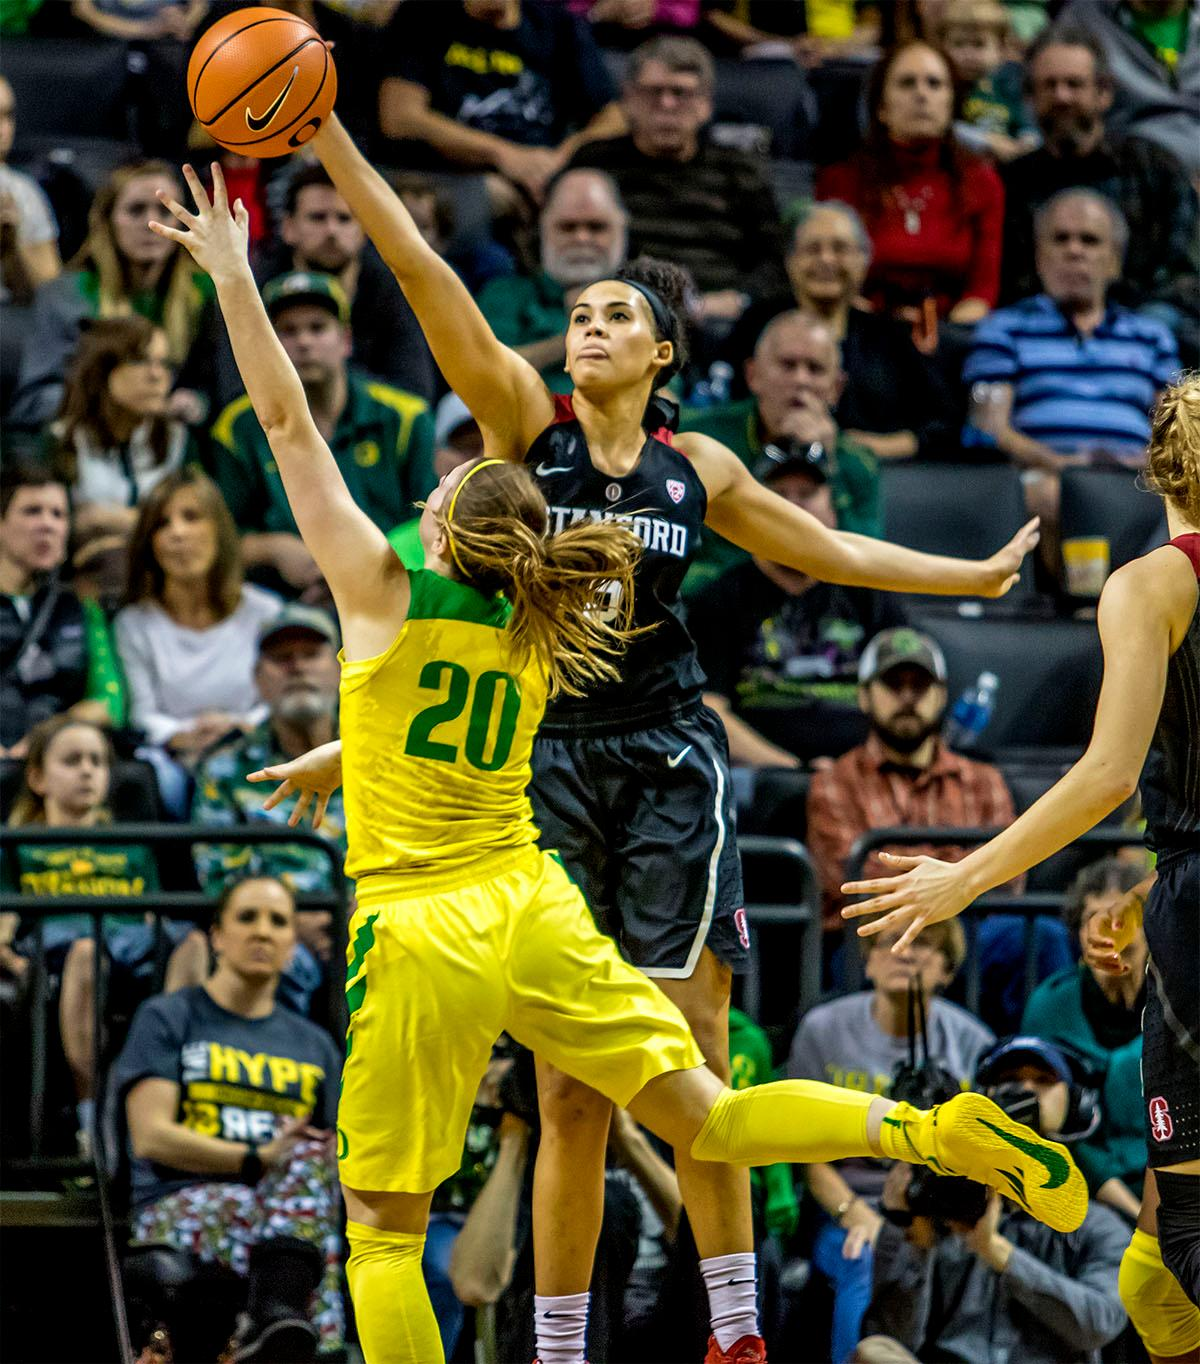 Standord's Kaylee Johnson (#5) blocks the Duck's Sabrina Ionescu's (#20) shot. The Stanford Cardinal defeated the Oregon Ducks 78-65 on Sunday afternoon at Matthew Knight Arena. Stanford is now 10-2 in conference play and with this loss the Ducks drop to 10-2. Leading the Stanford Cardinal was Brittany McPhee with 33 points, Alanna Smith with 14 points, and Kiana Williams with 14 points. For the Ducks Sabrina Ionescu led with 22 points, Ruthy Hebard added 16 points, and Satou Sabally put in 14 points. Photo by August Frank, Oregon News Lab